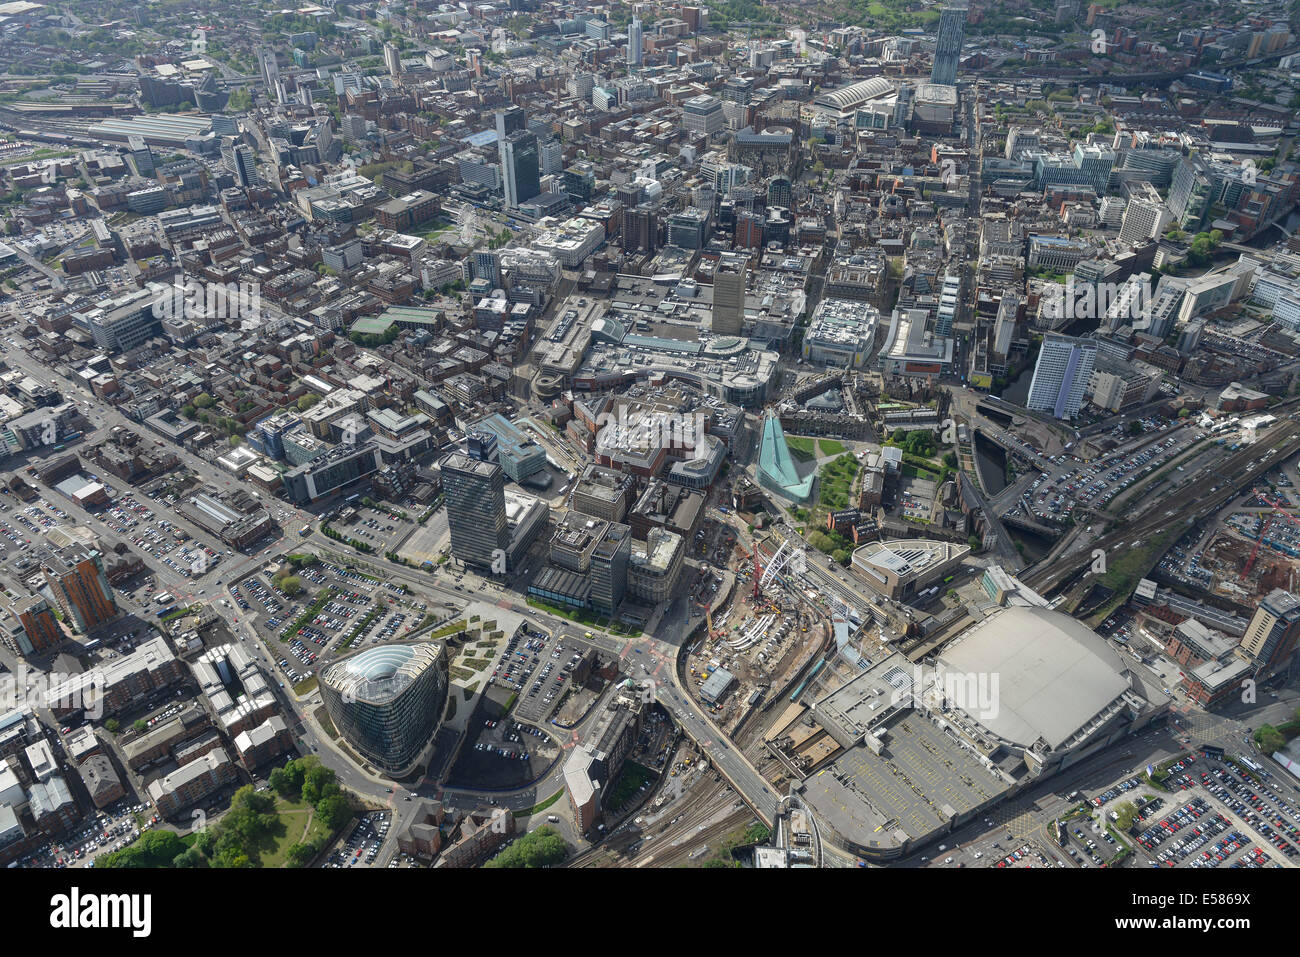 An aerial view of Manchester City Centre Stock Photo